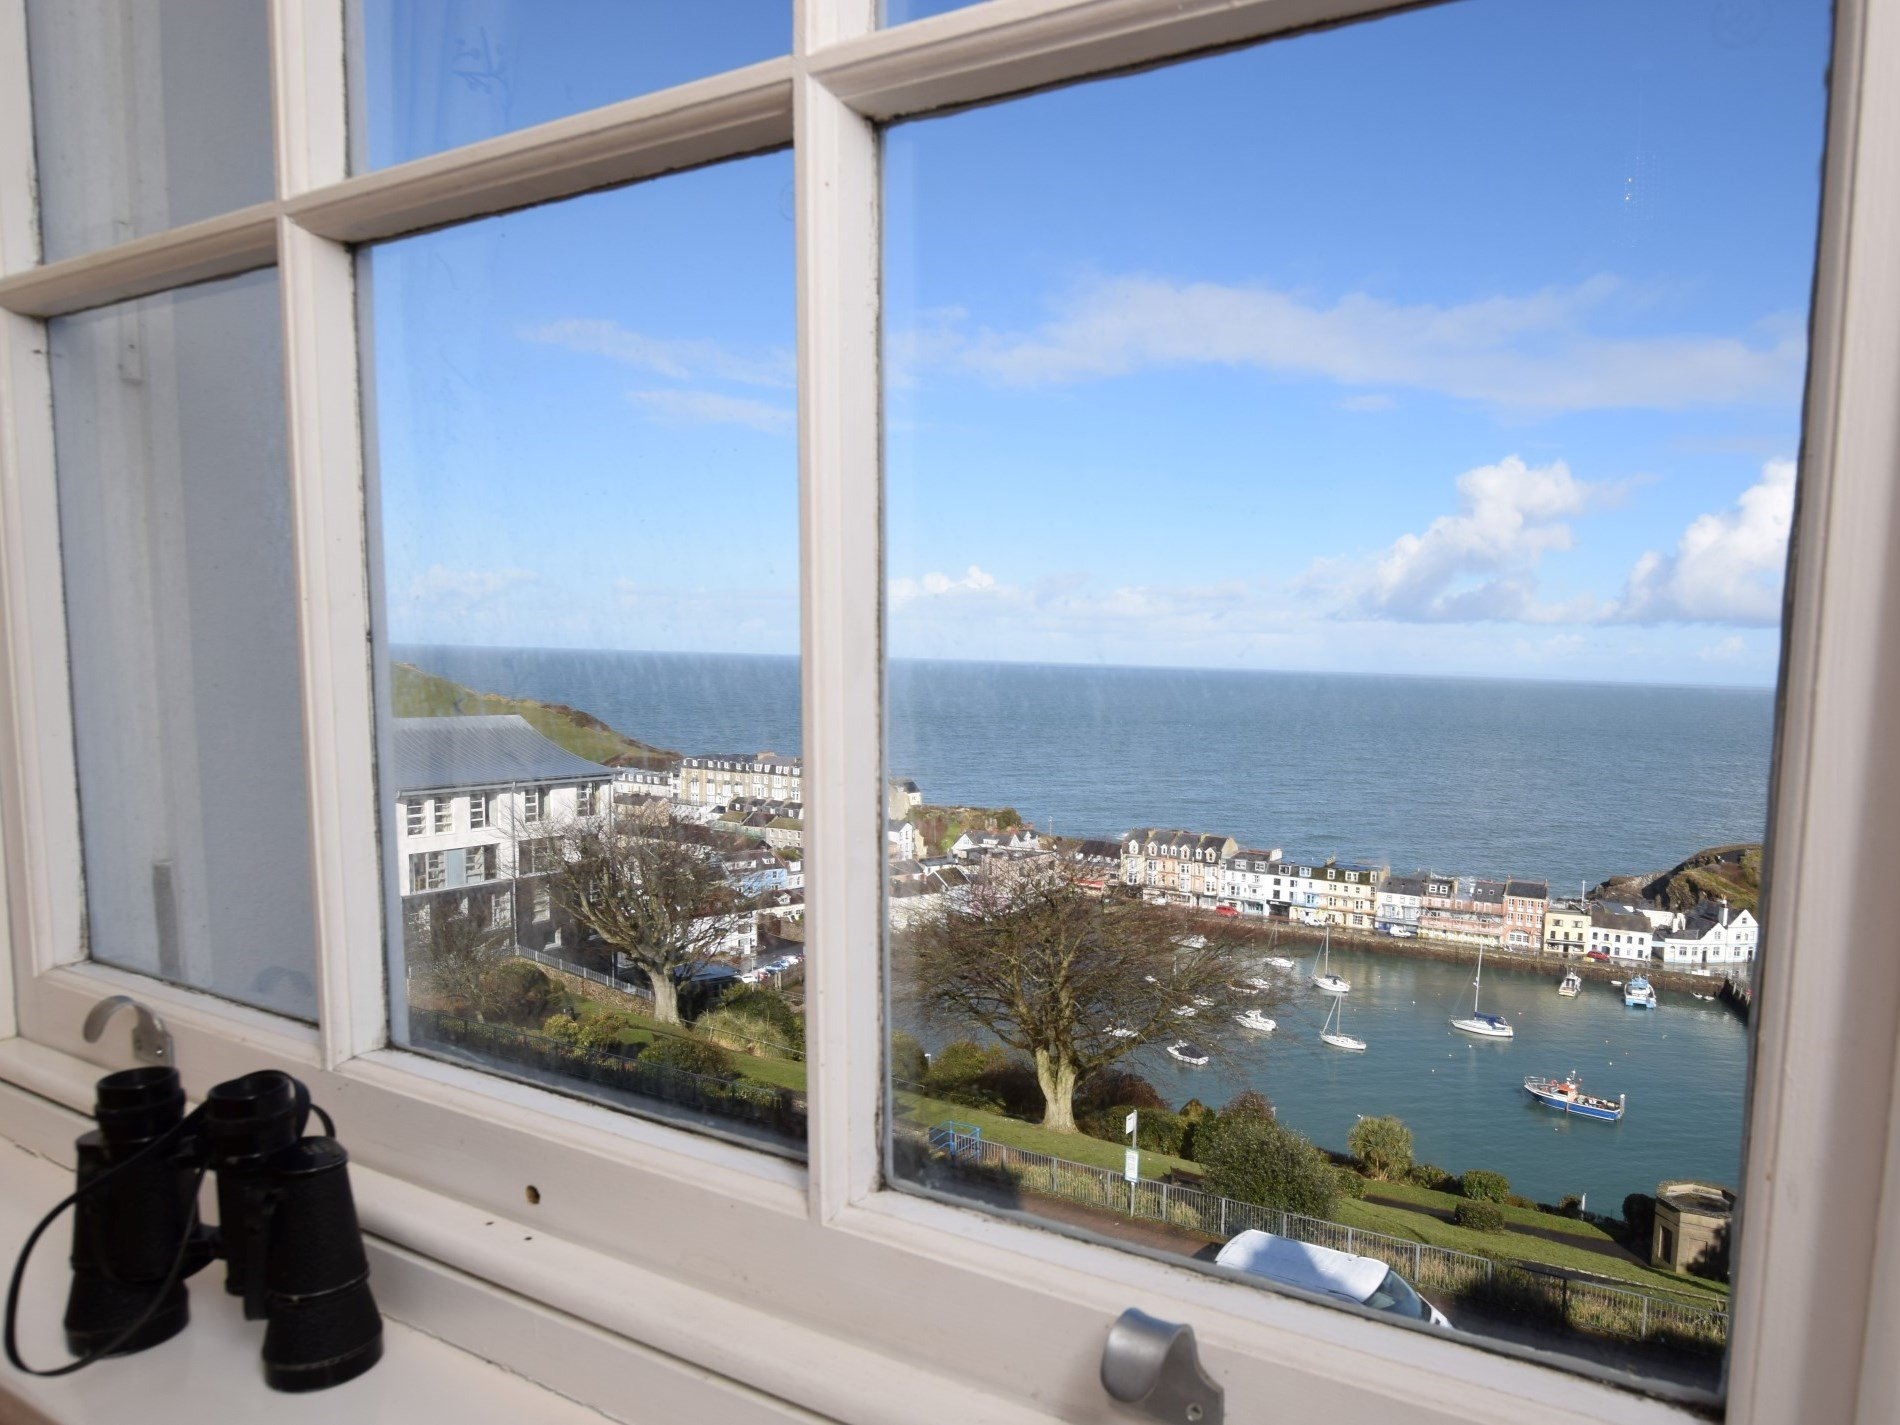 2 Bedroom Cottage in Ilfracombe, Devon